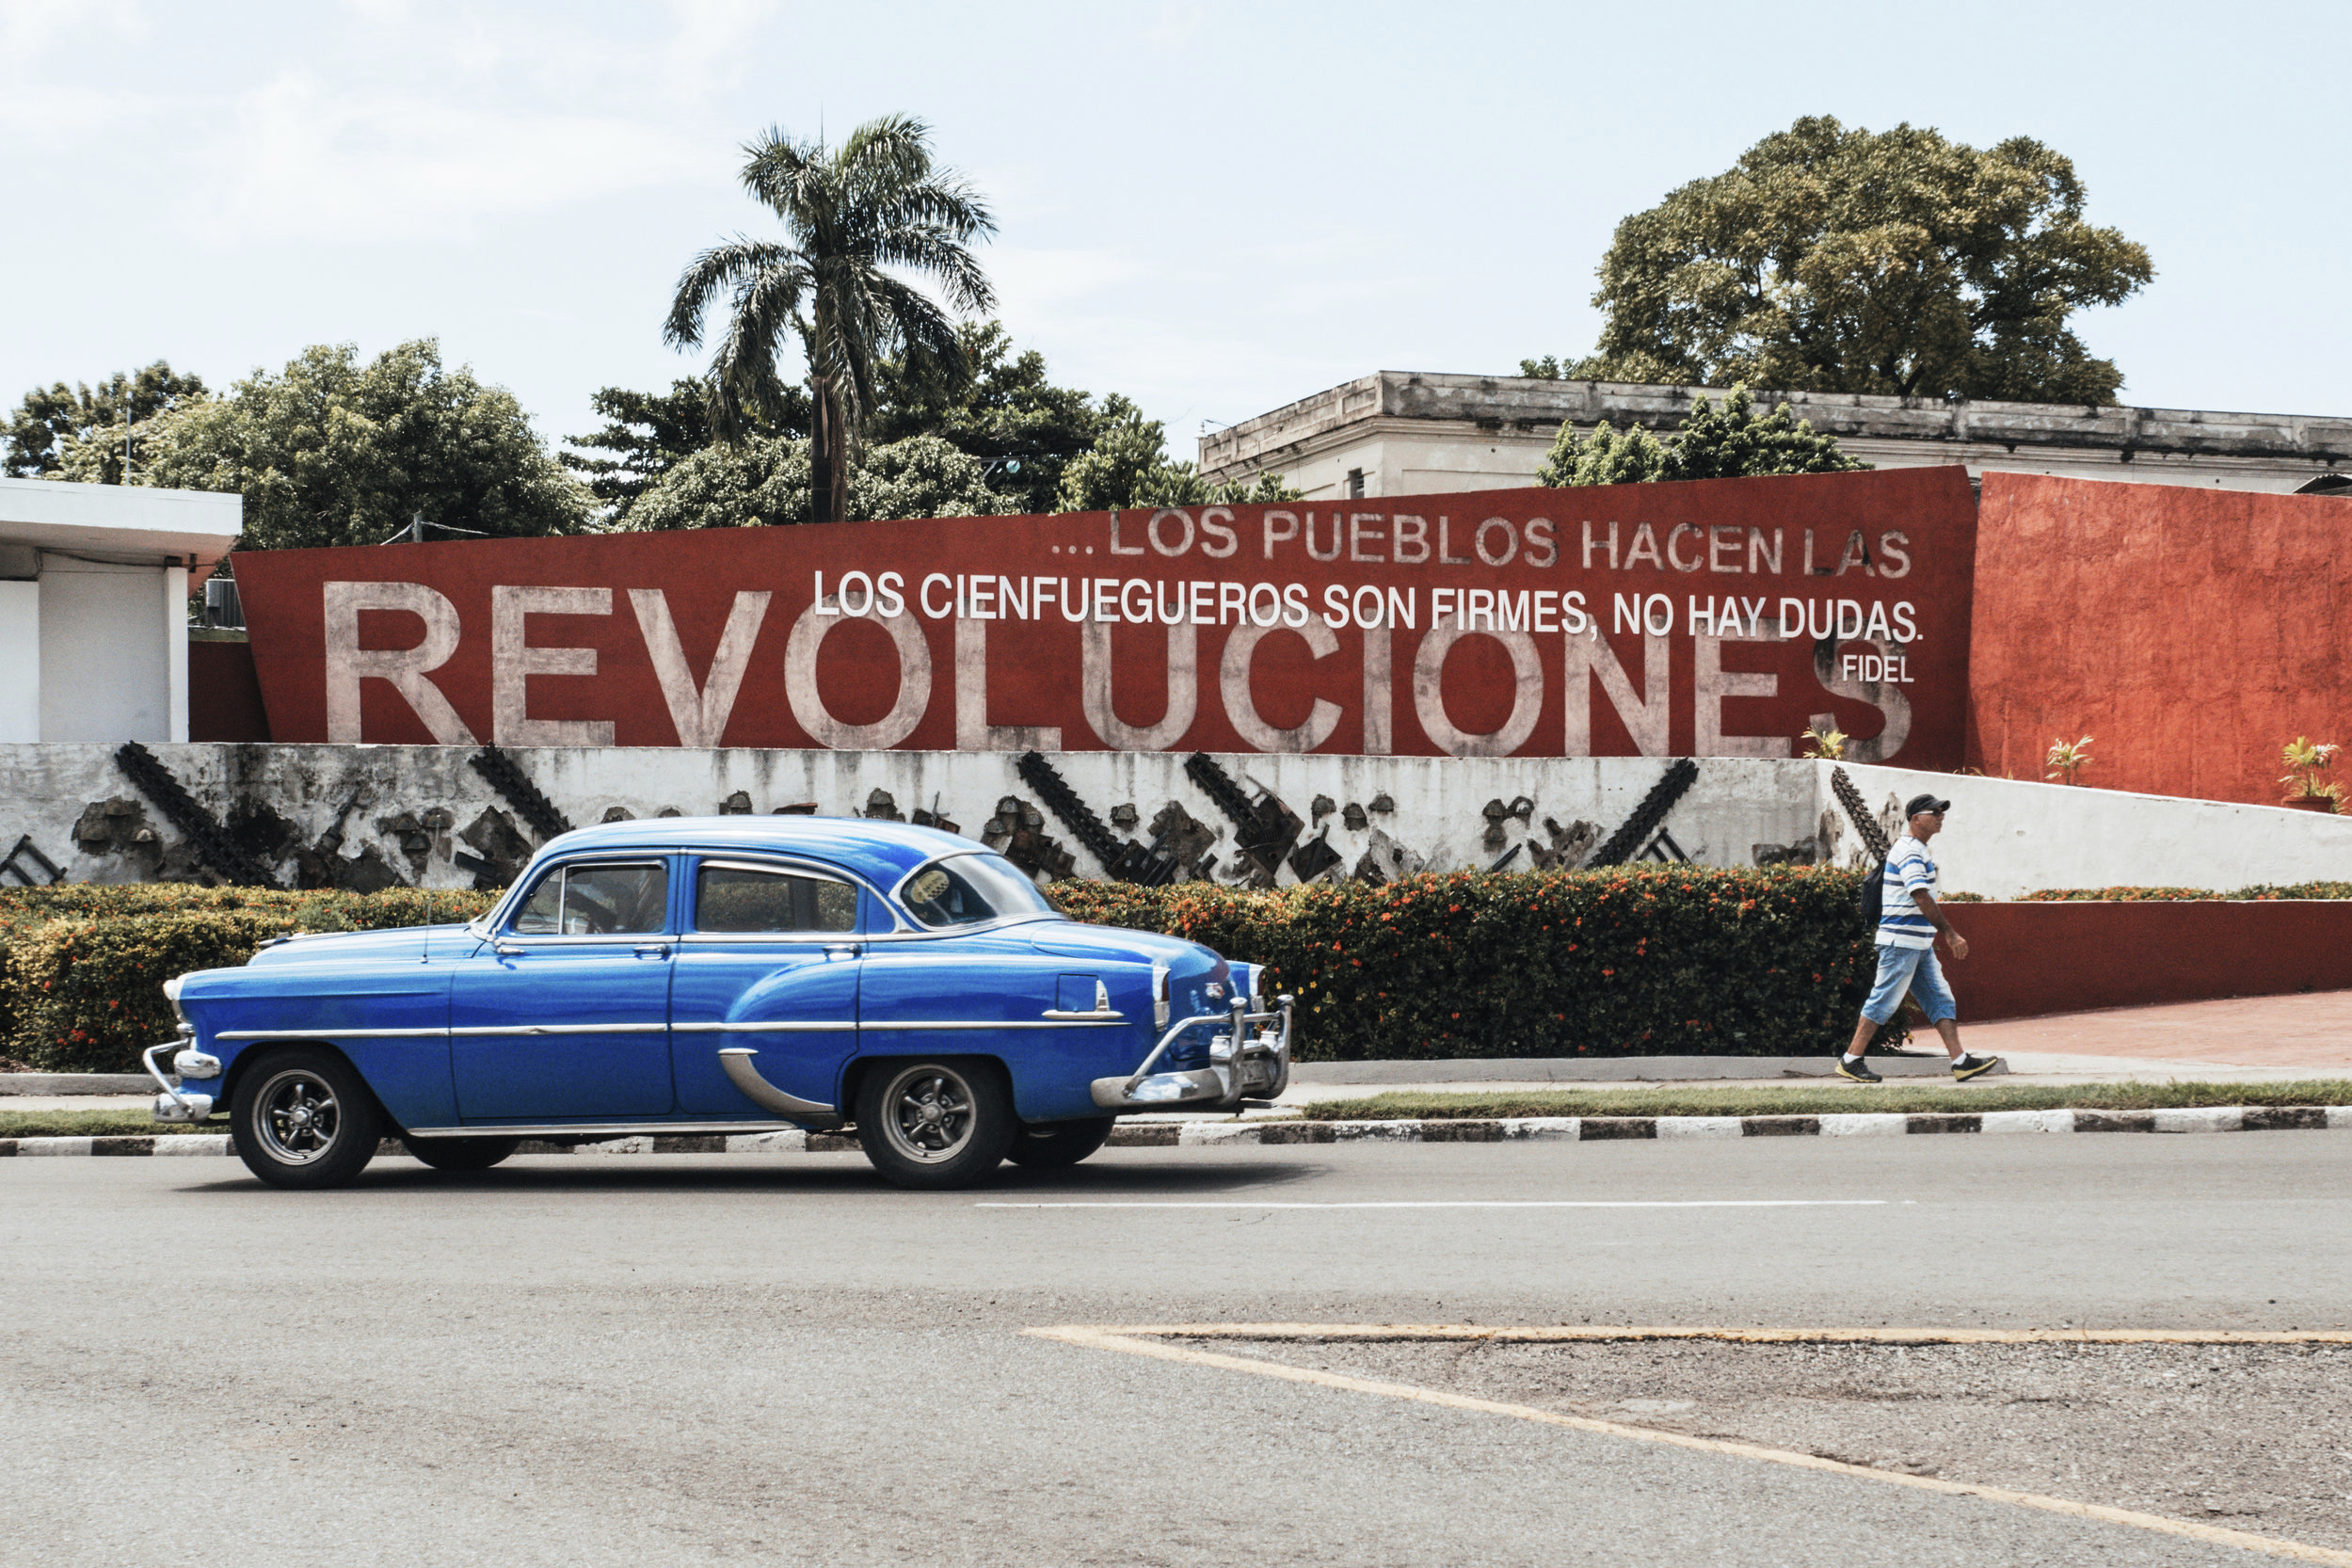 Cienfuegos, Cuba's only French-colonized city